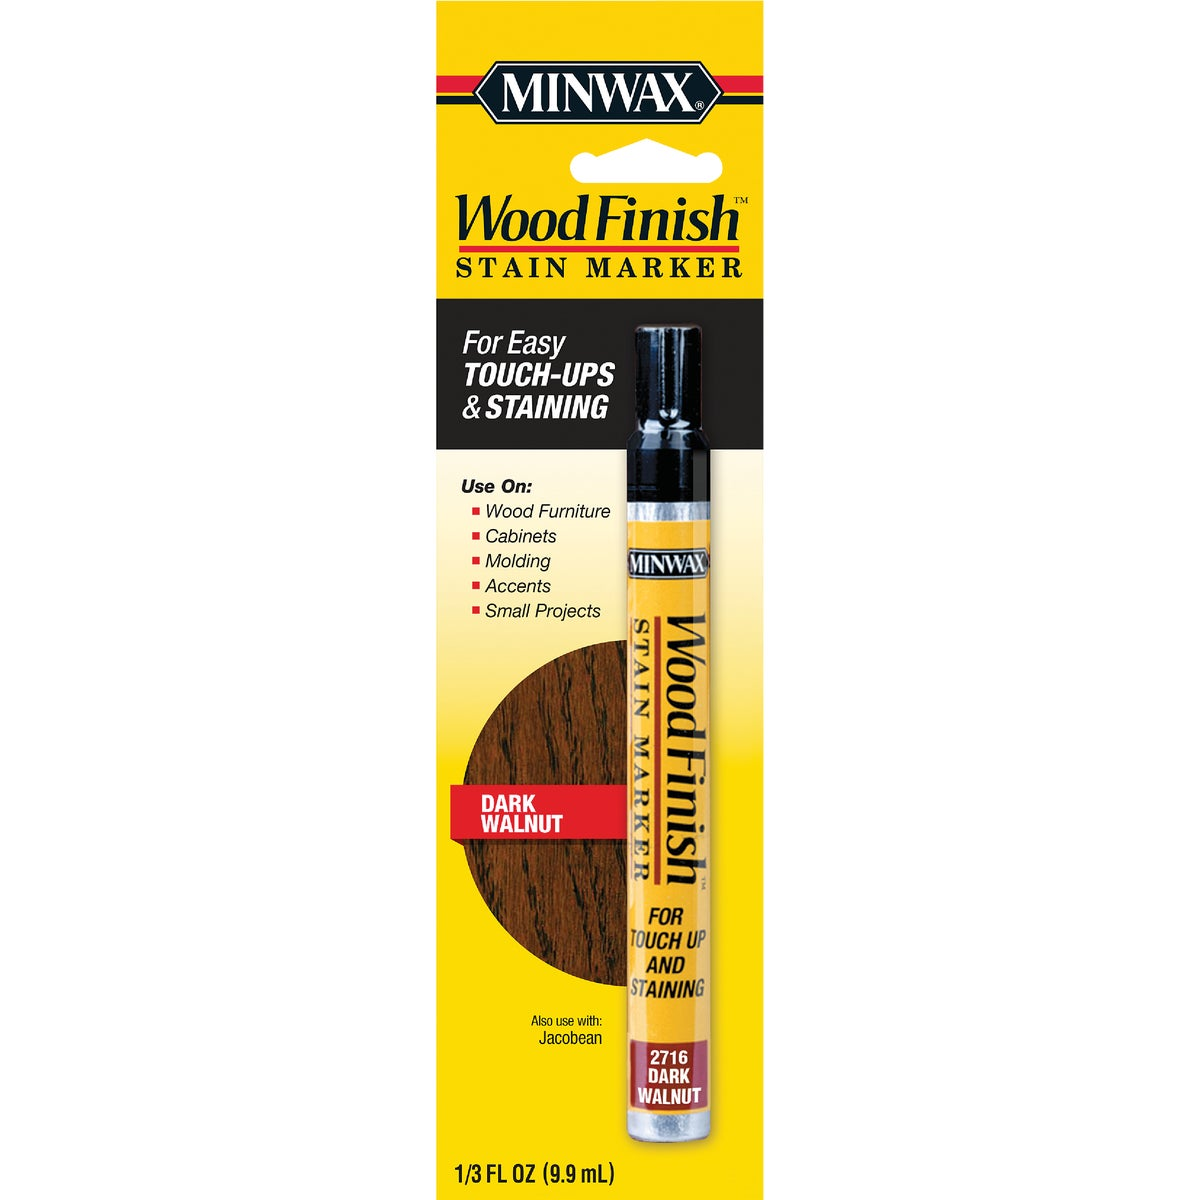 DARK WALNUT STAIN MARKER